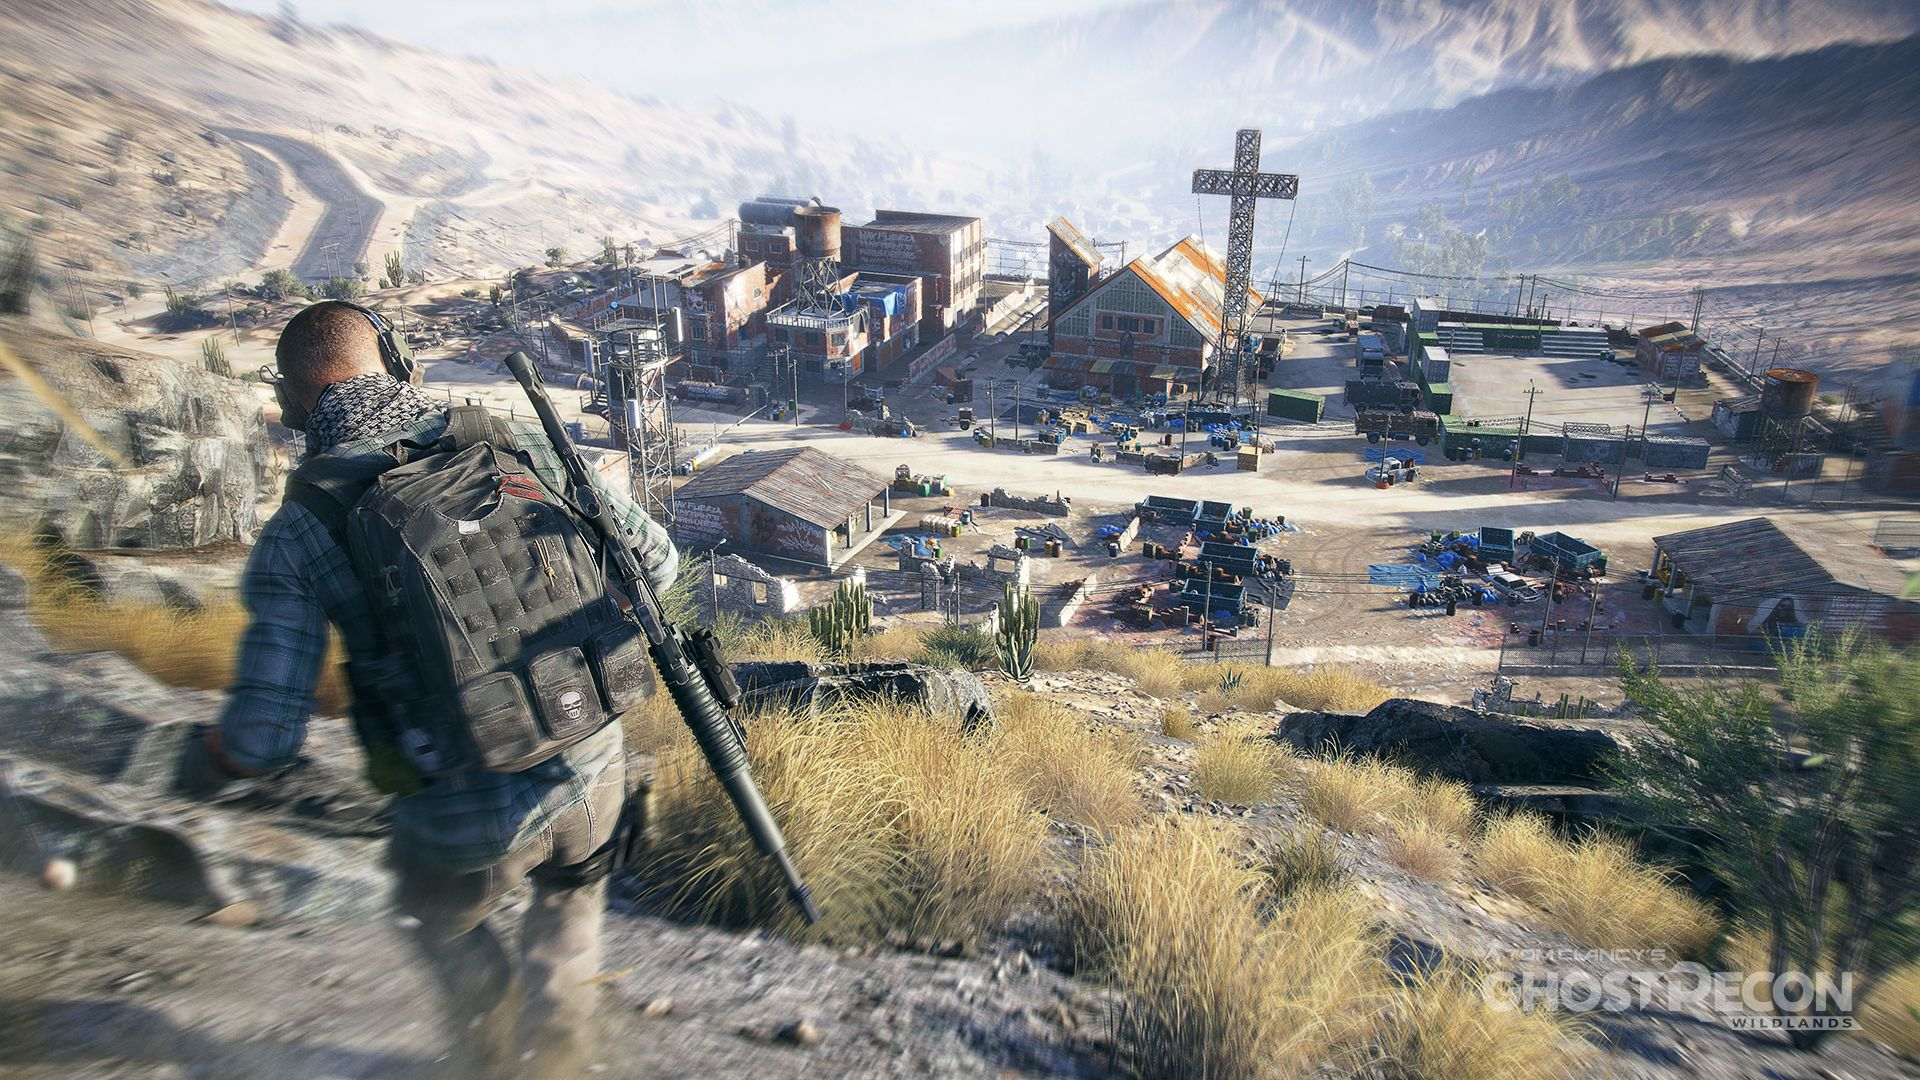 Ghost Recon Wildlands Has Received Excellent Feedback, Can Be